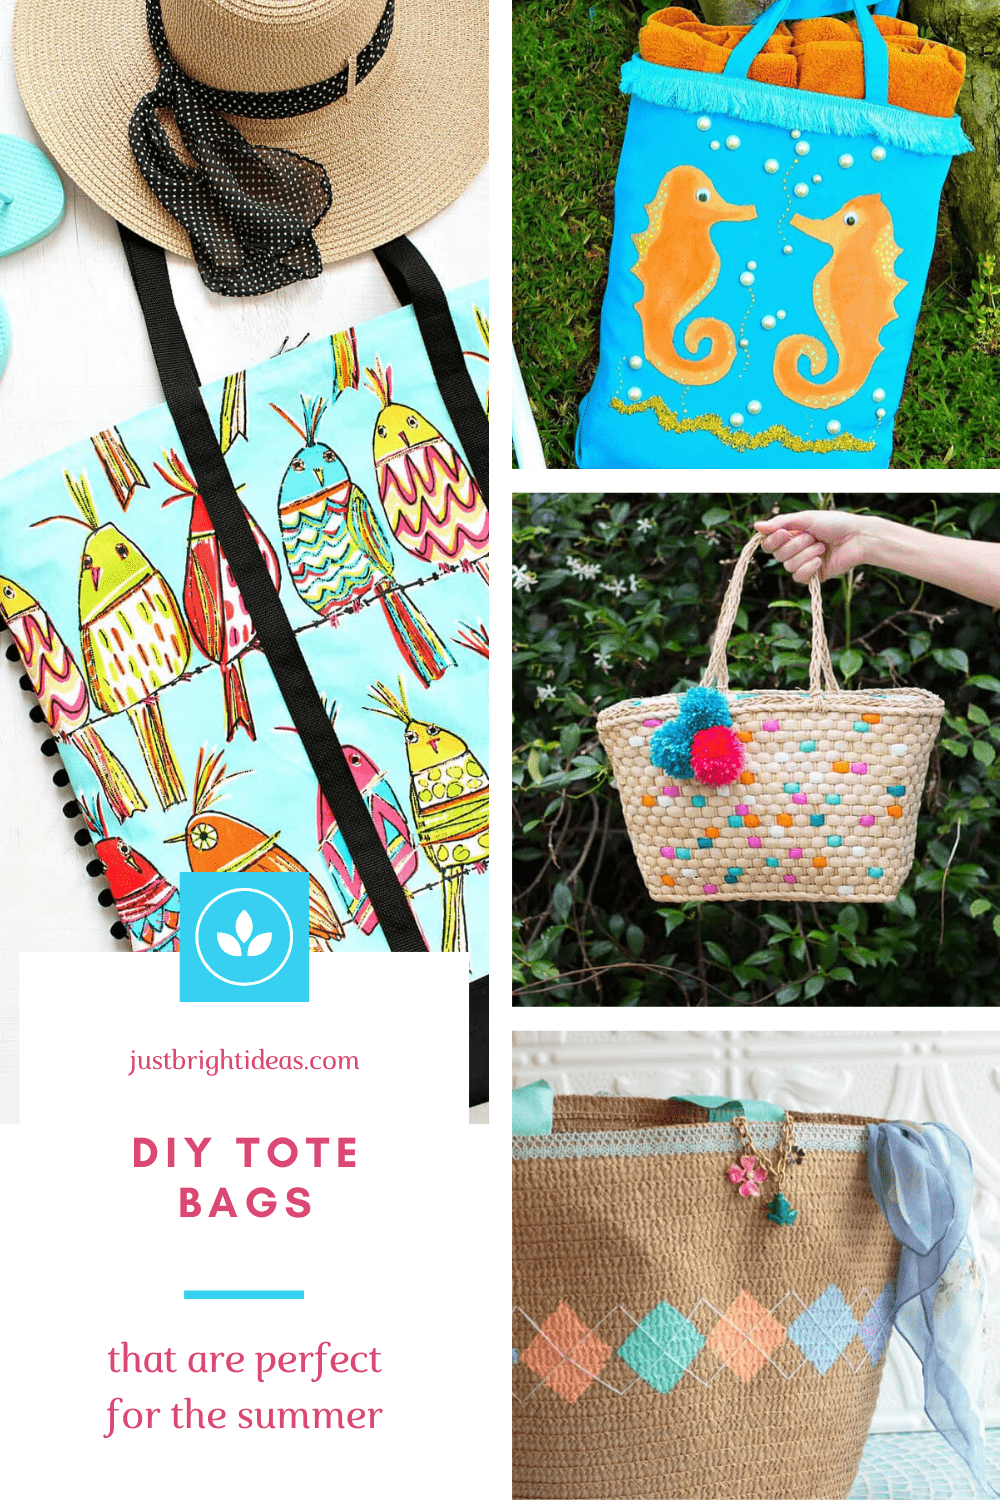 Summer is a coming so it's time to make a DIY tote bag (or three) so you have something to carry all your things around in